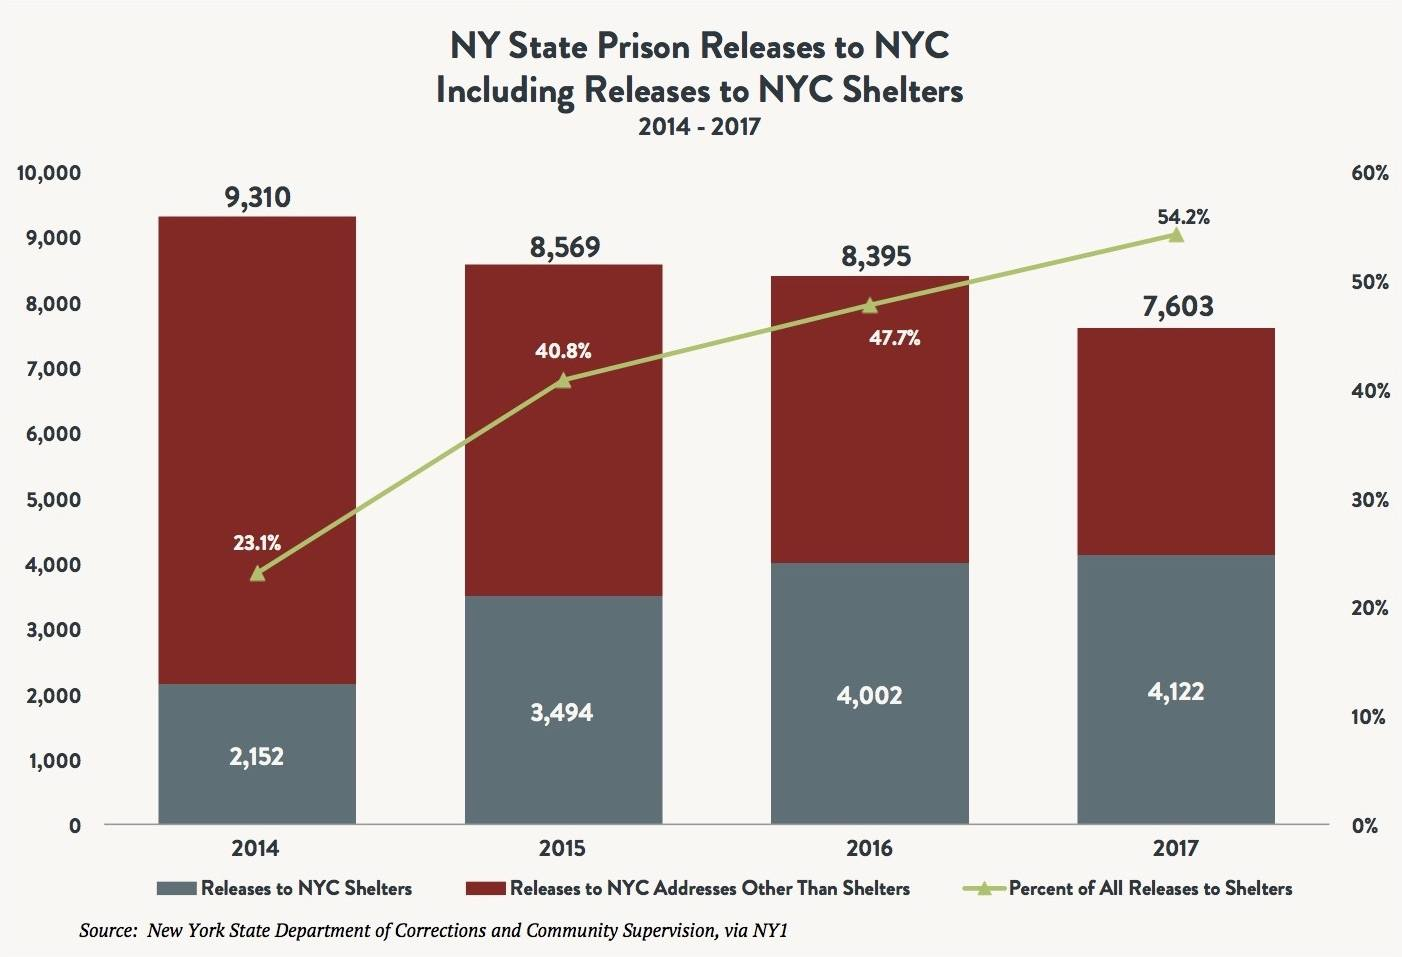 A stacked bar and line graph showing NY State prison releases to NYC including releases to NYC shelters vs. other addresses between 2014 and 2017.